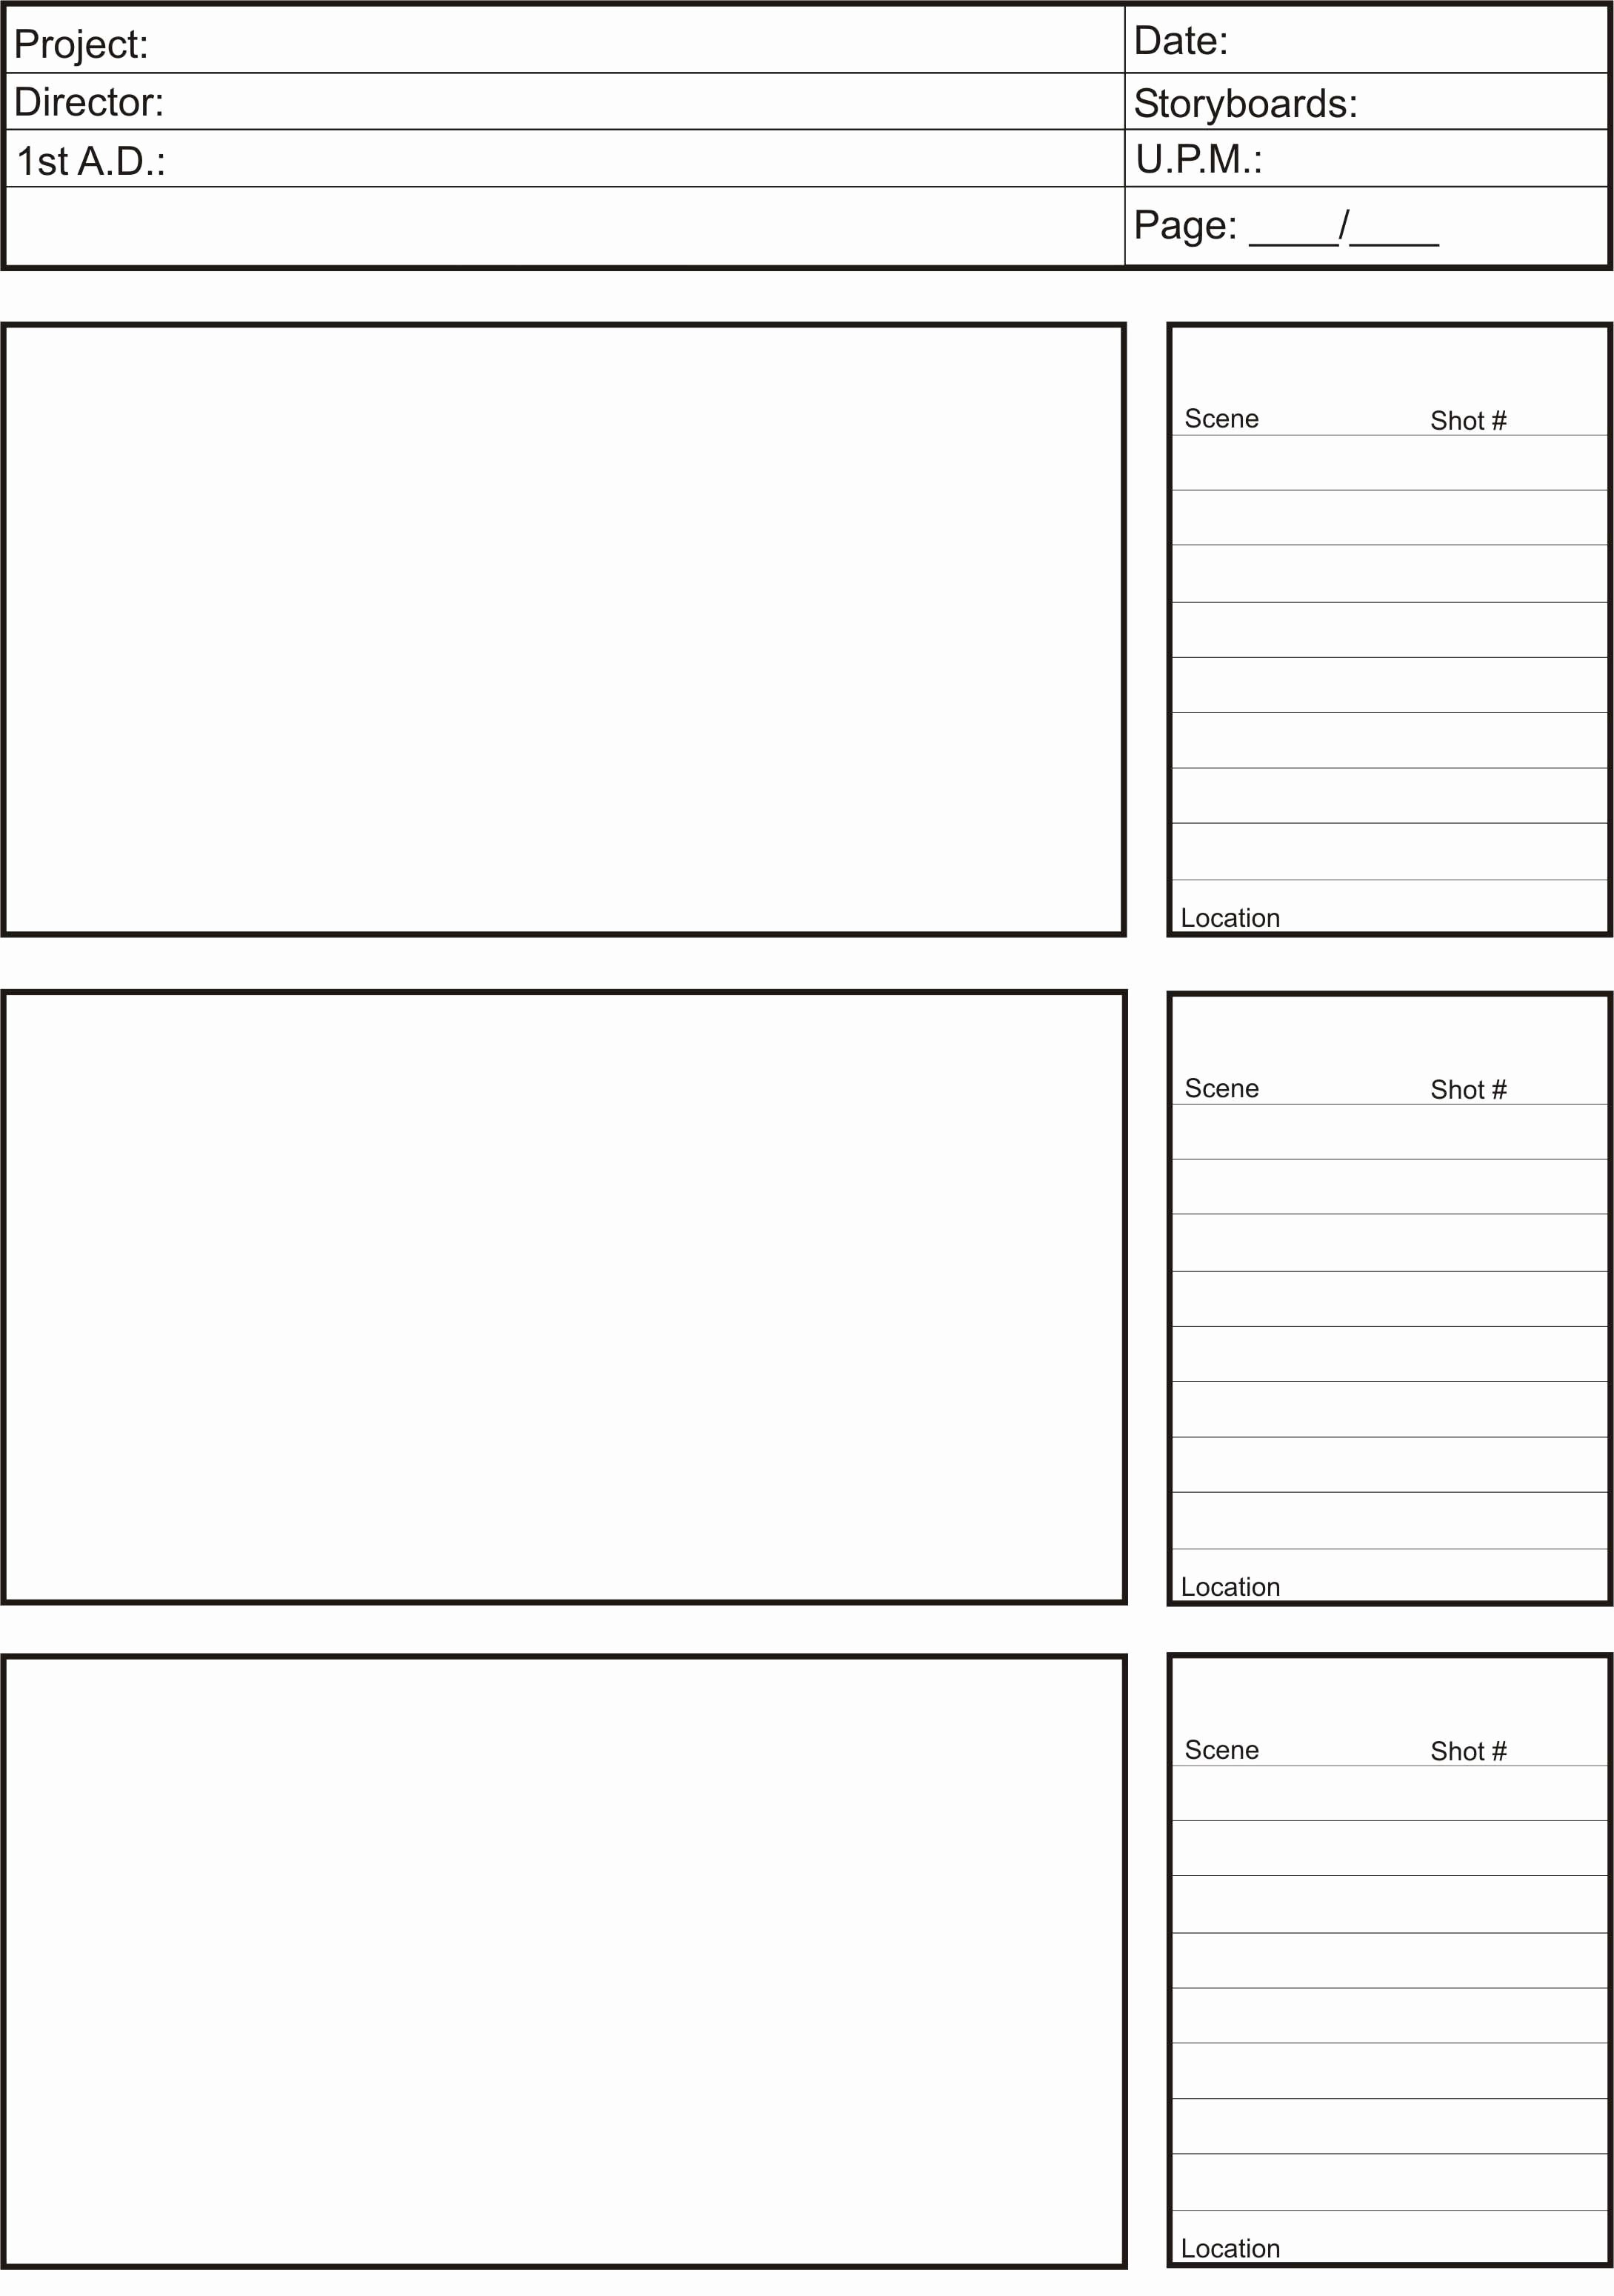 Professional Film Storyboard Template Awesome Animation Storyboard Template Google Search